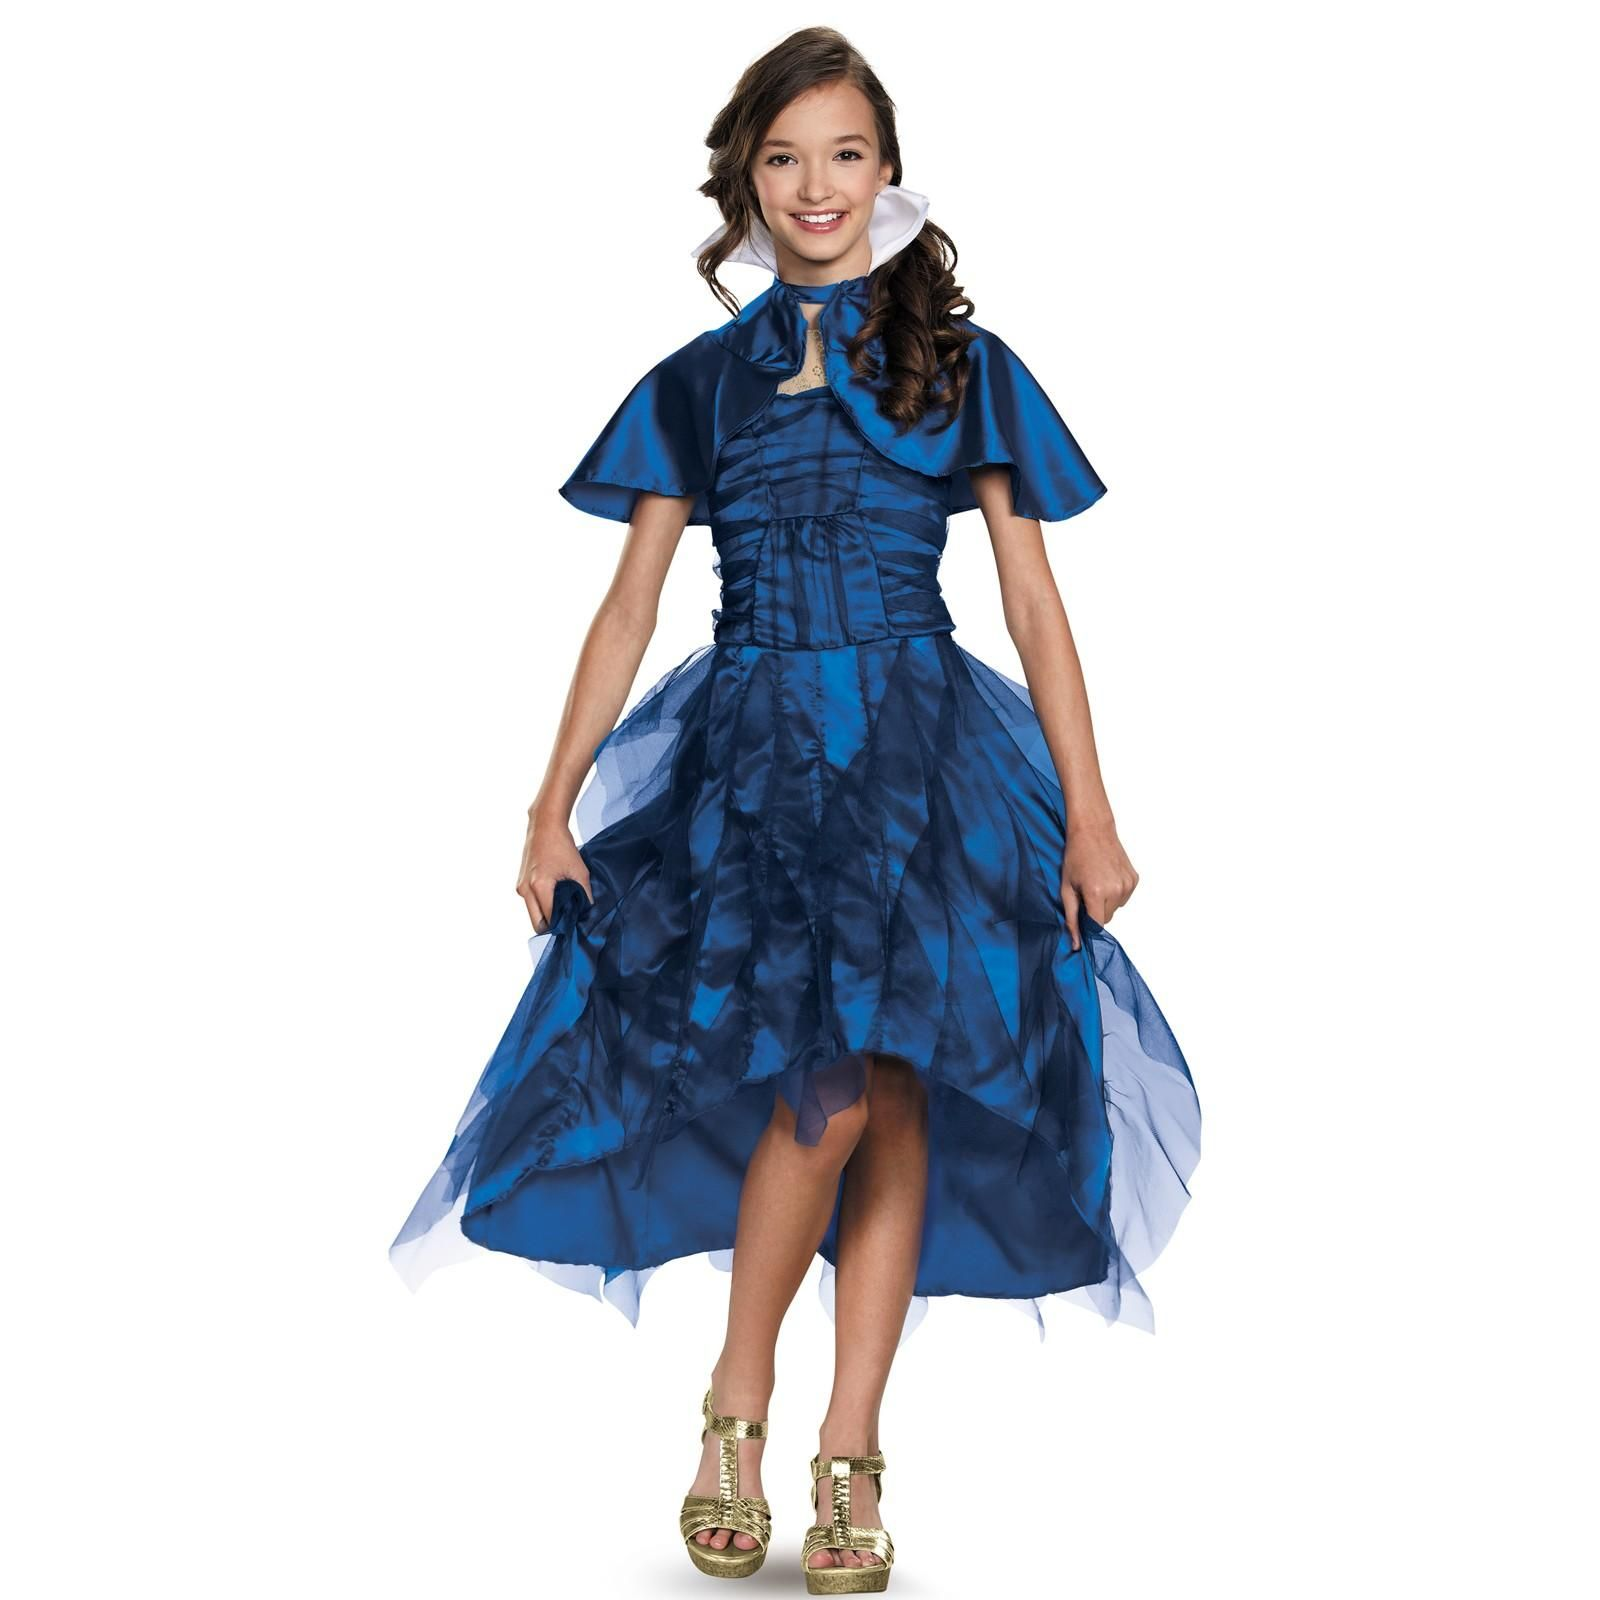 Disneys Descendants Deluxe Evie Coronation Costume For